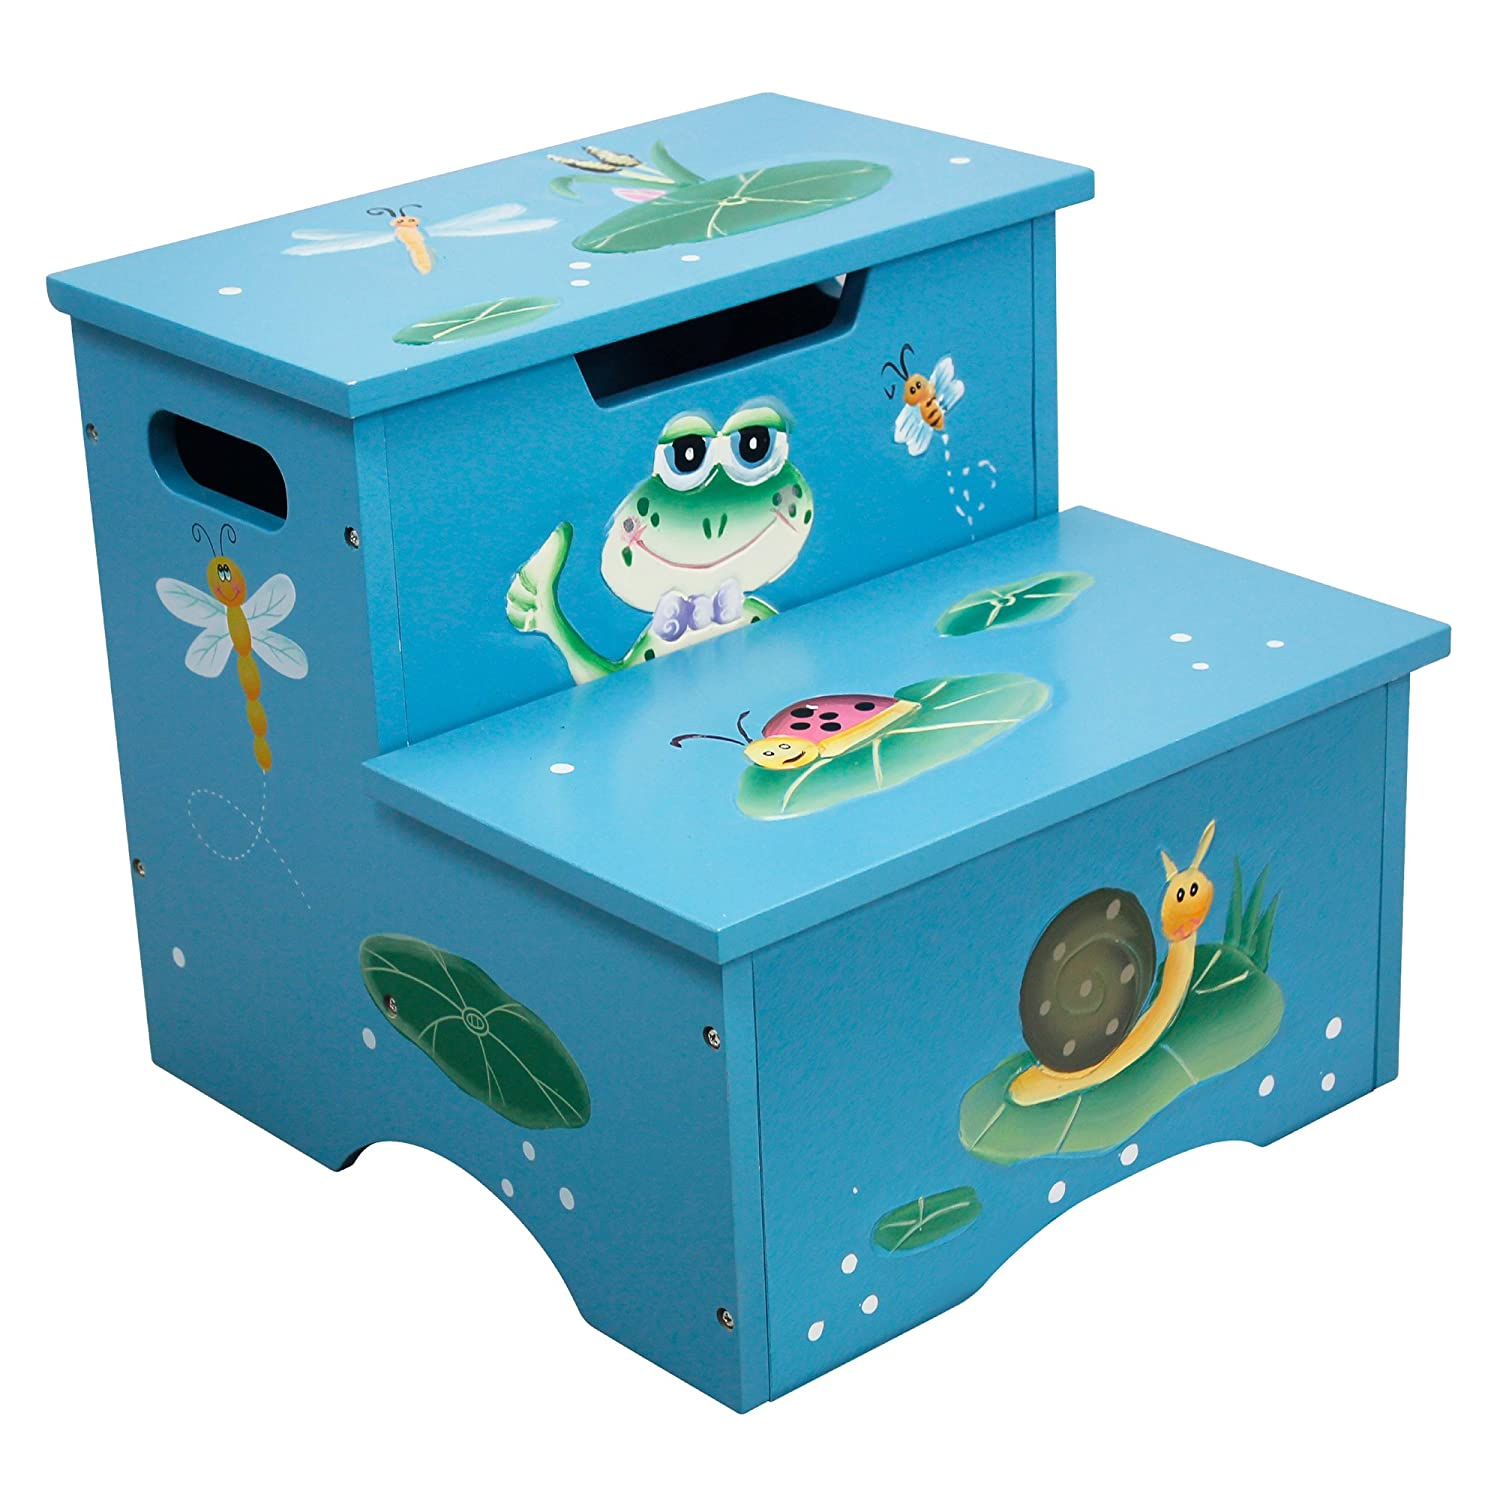 Amazon.com Fantasy Fields - Froggy Thematic Kids Wooden Step Stool with Storage | Imagination Inspiring Hand Crafted u0026 Hand Painted Details Non-Toxic ...  sc 1 st  Amazon.com & Amazon.com: Fantasy Fields - Froggy Thematic Kids Wooden Step ... islam-shia.org